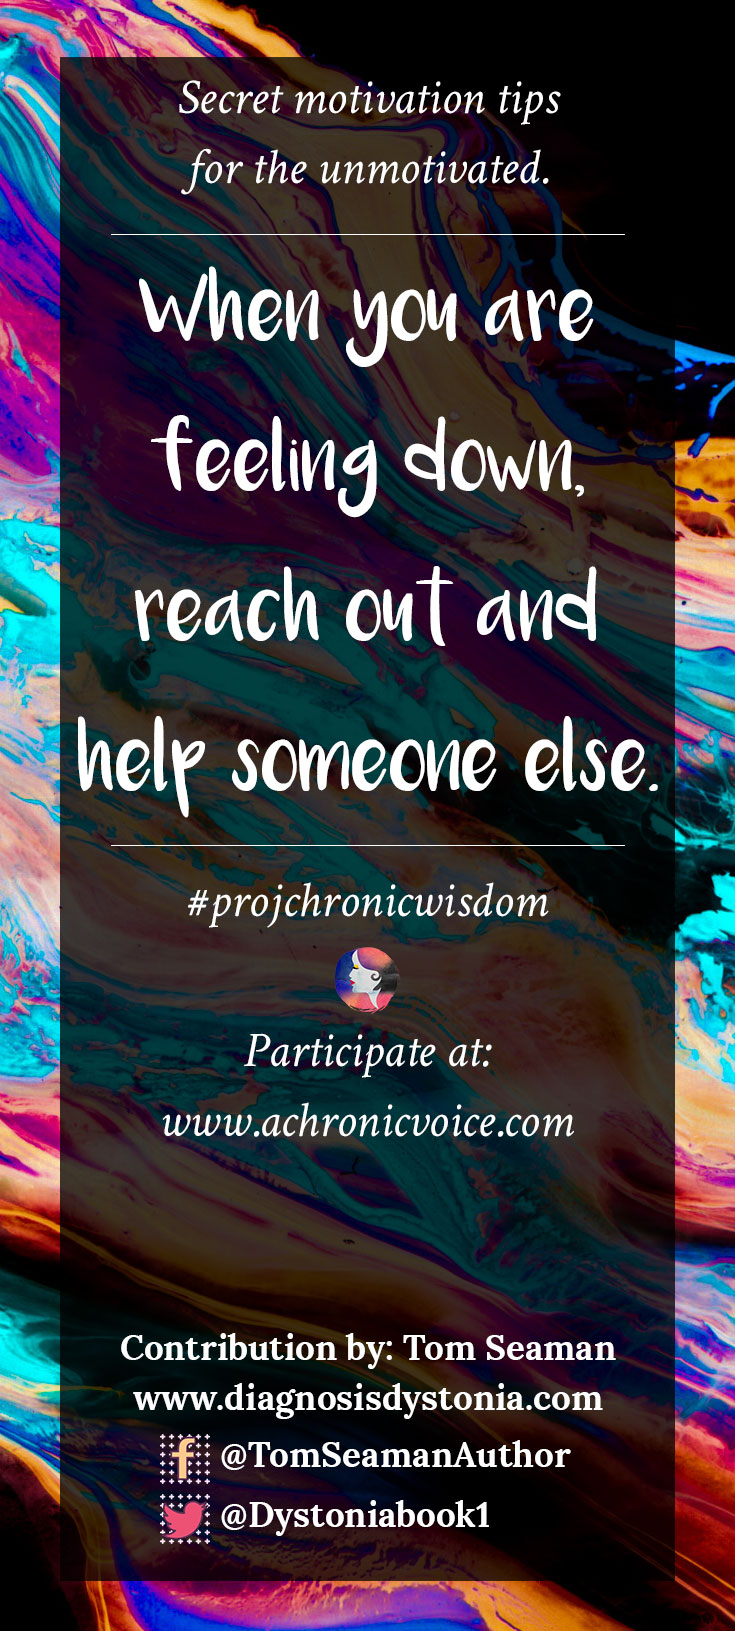 """When you are feeling down, reach out and help someone else."" - Tom Seaman 